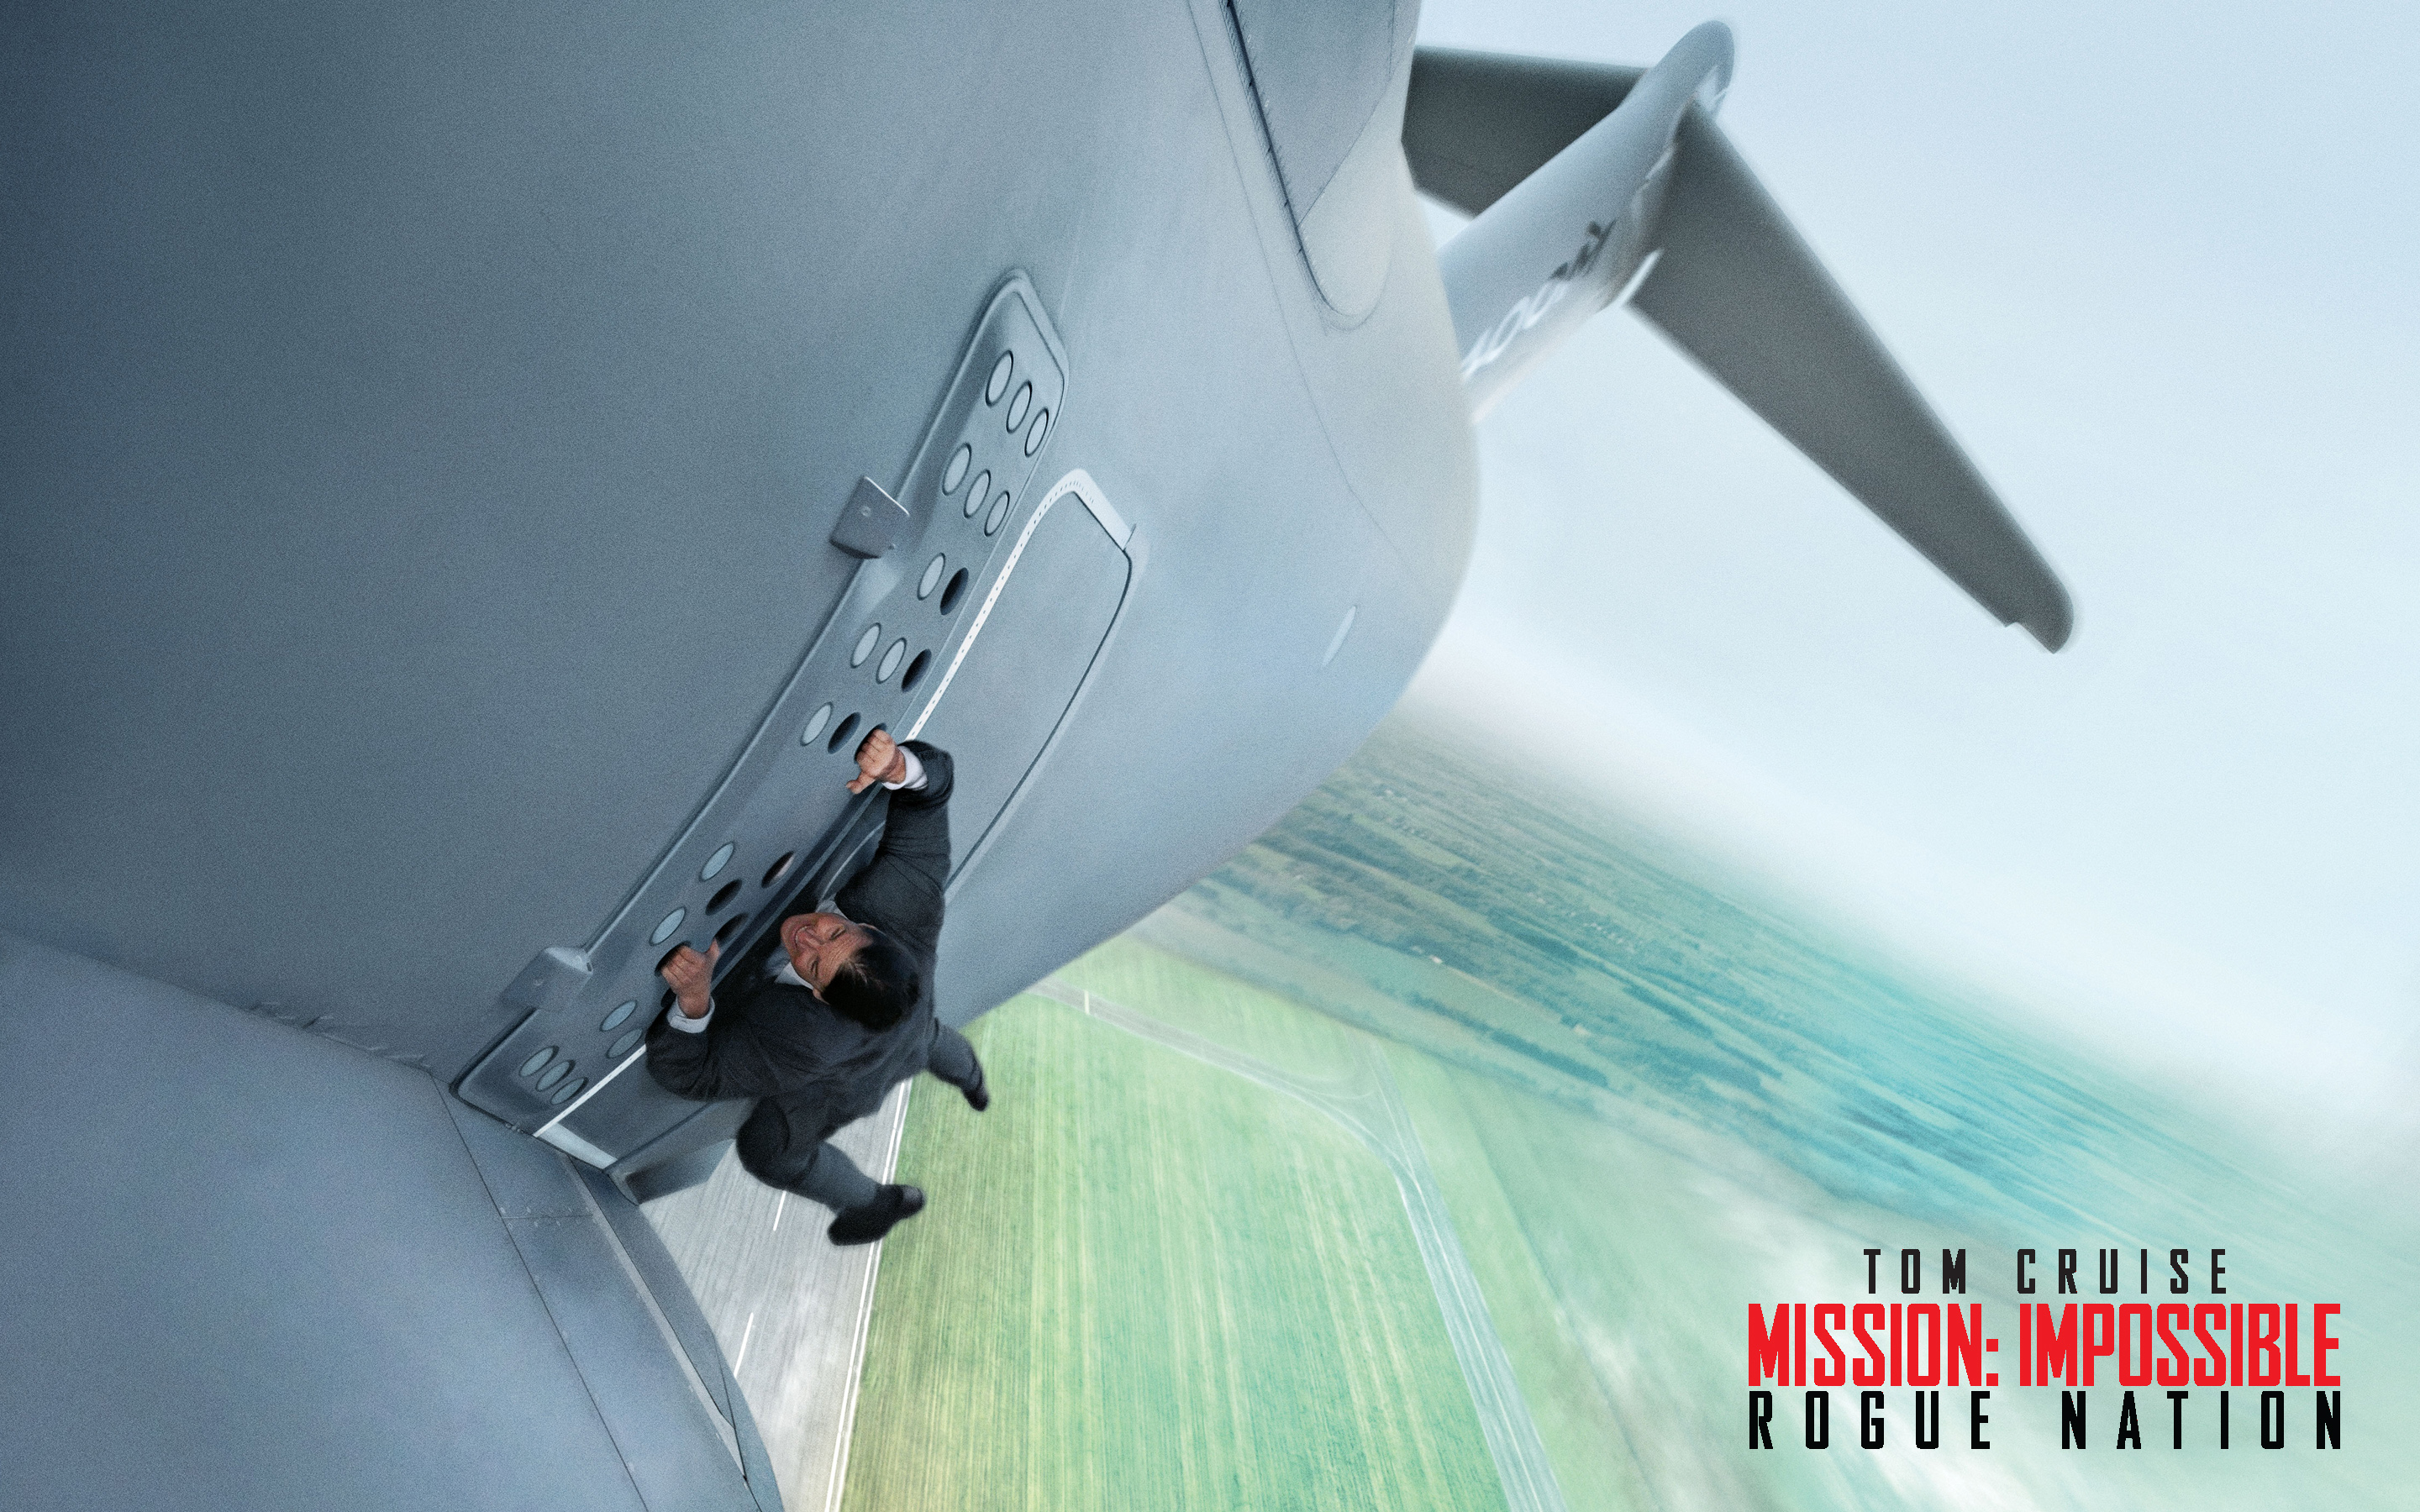 Mission Impossible Rogue Nation 2 Hd Movies 4k Wallpapers Images Backgrounds Photos And Pictures